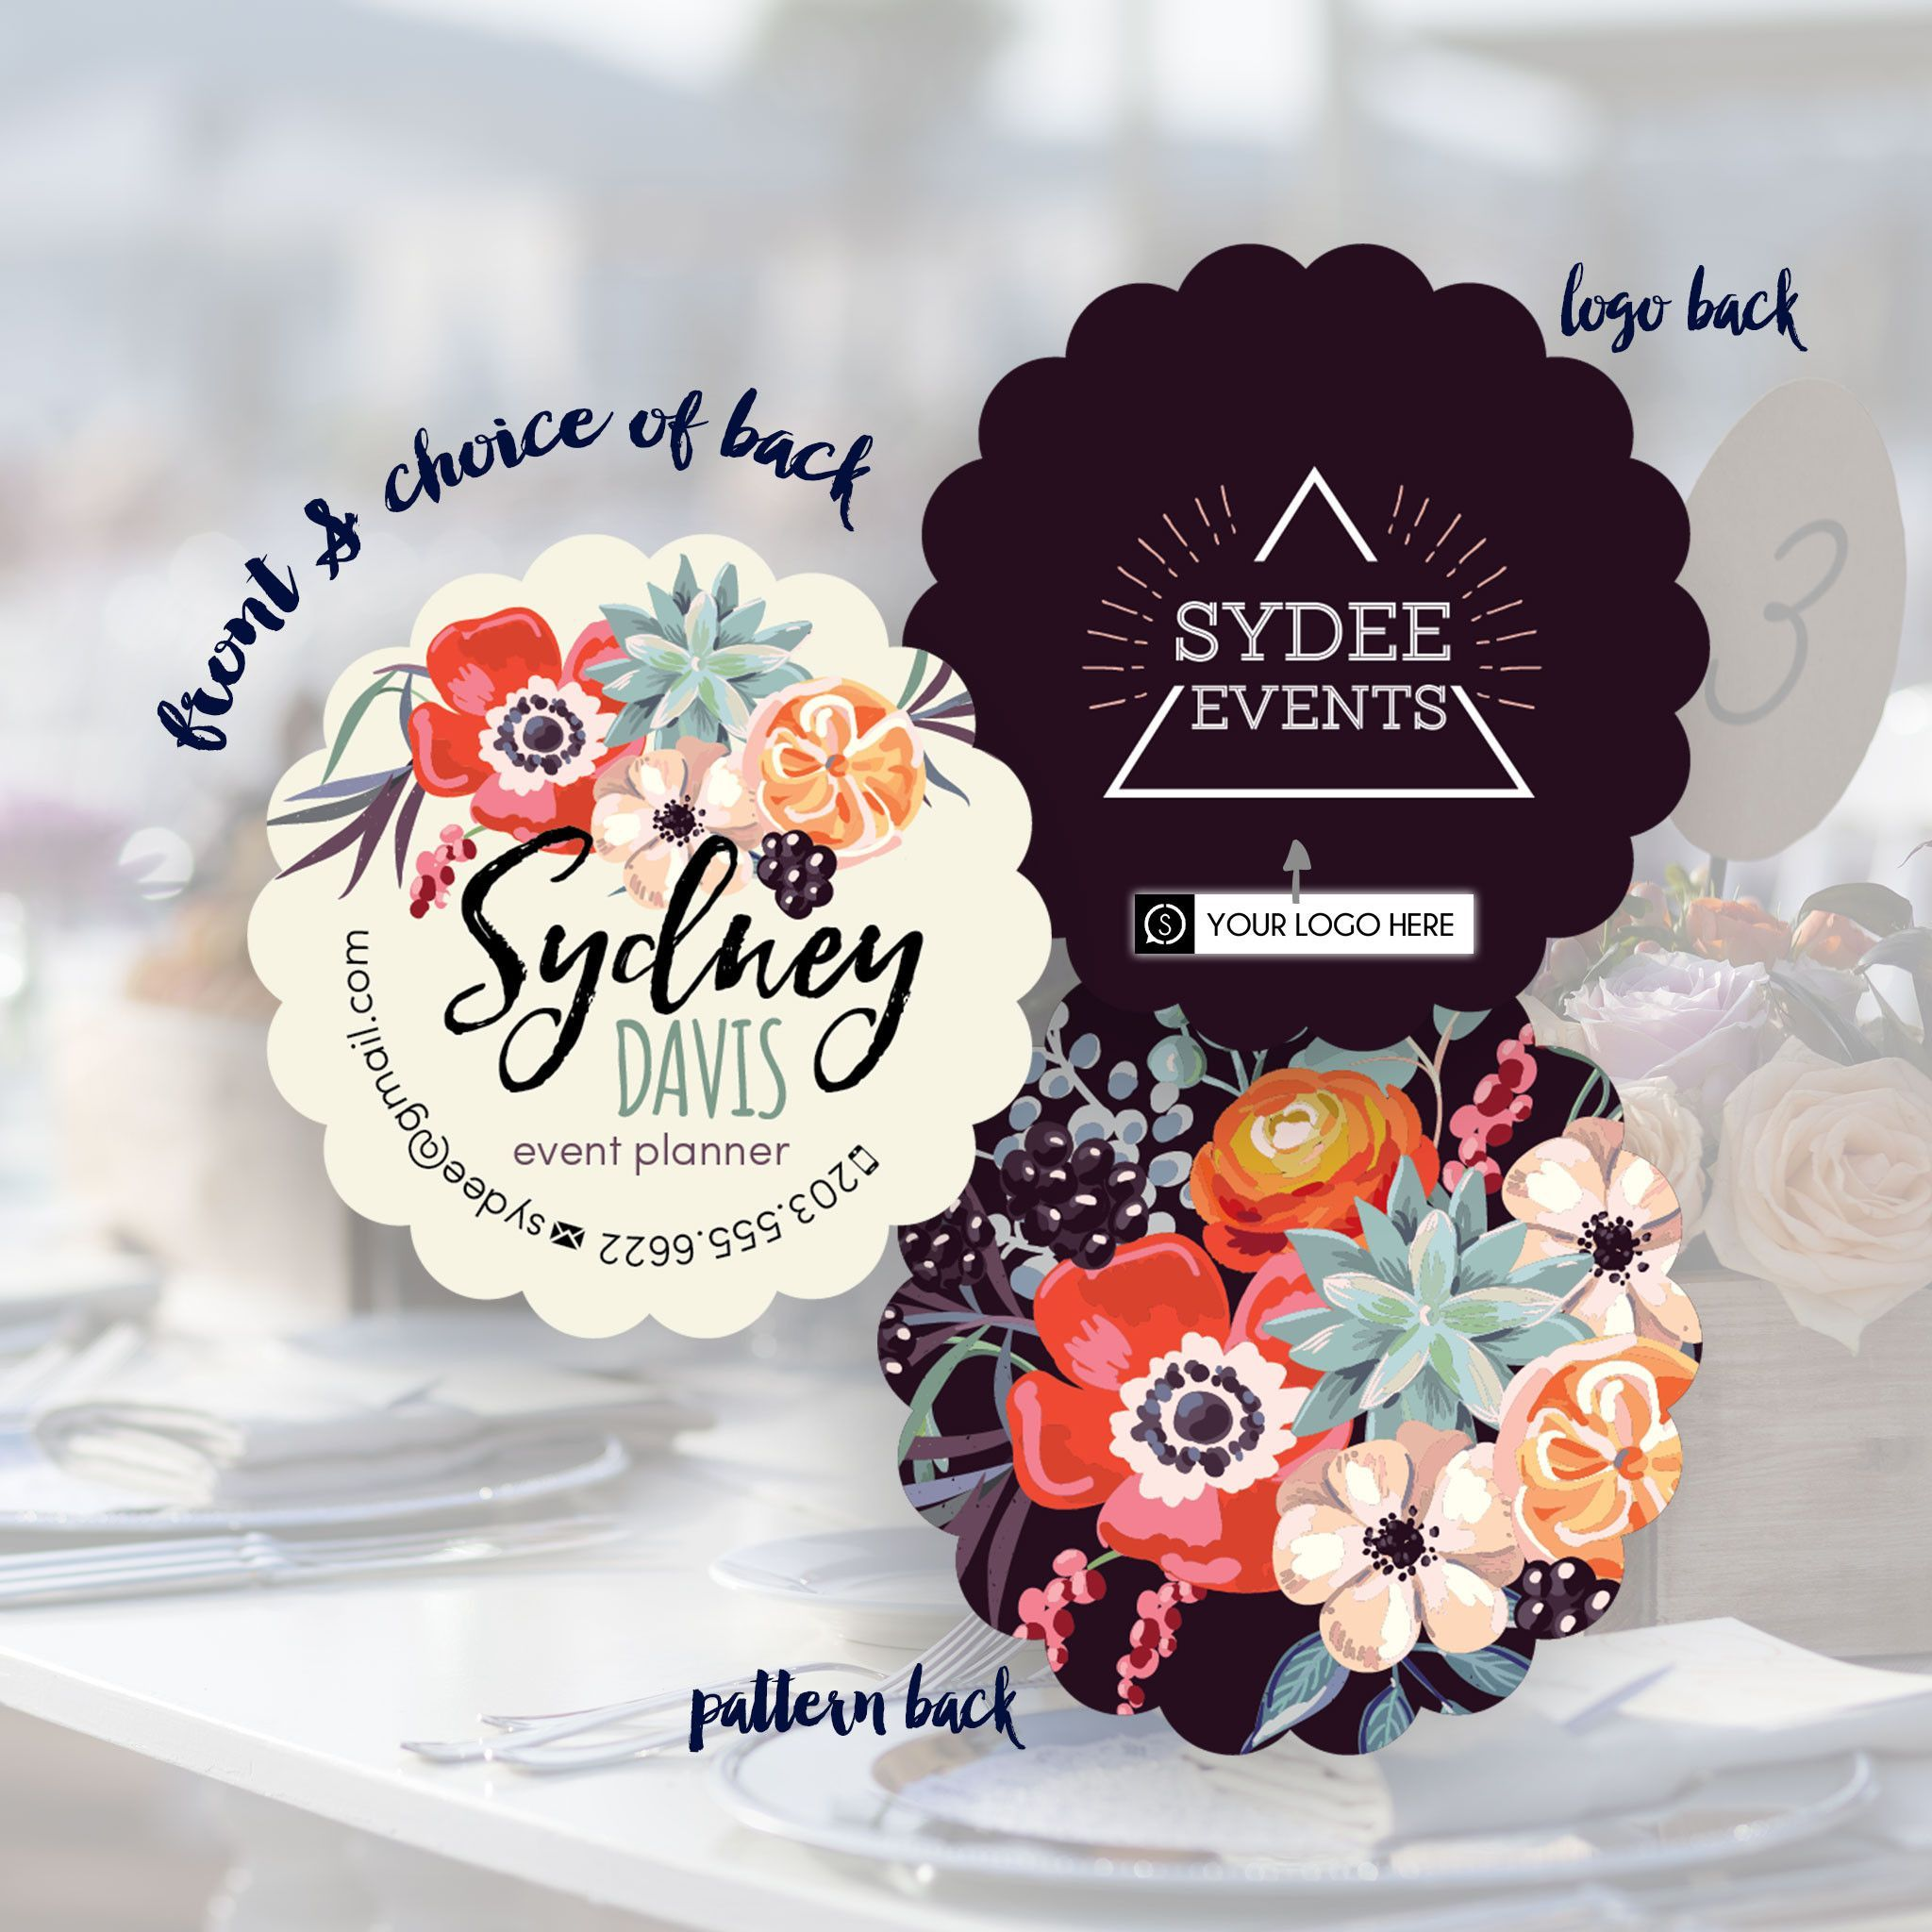 Sydney business cards business cards personality and business event planner business cards rodan and fields business cards floral business card business card design cards case sydney reheart Choice Image